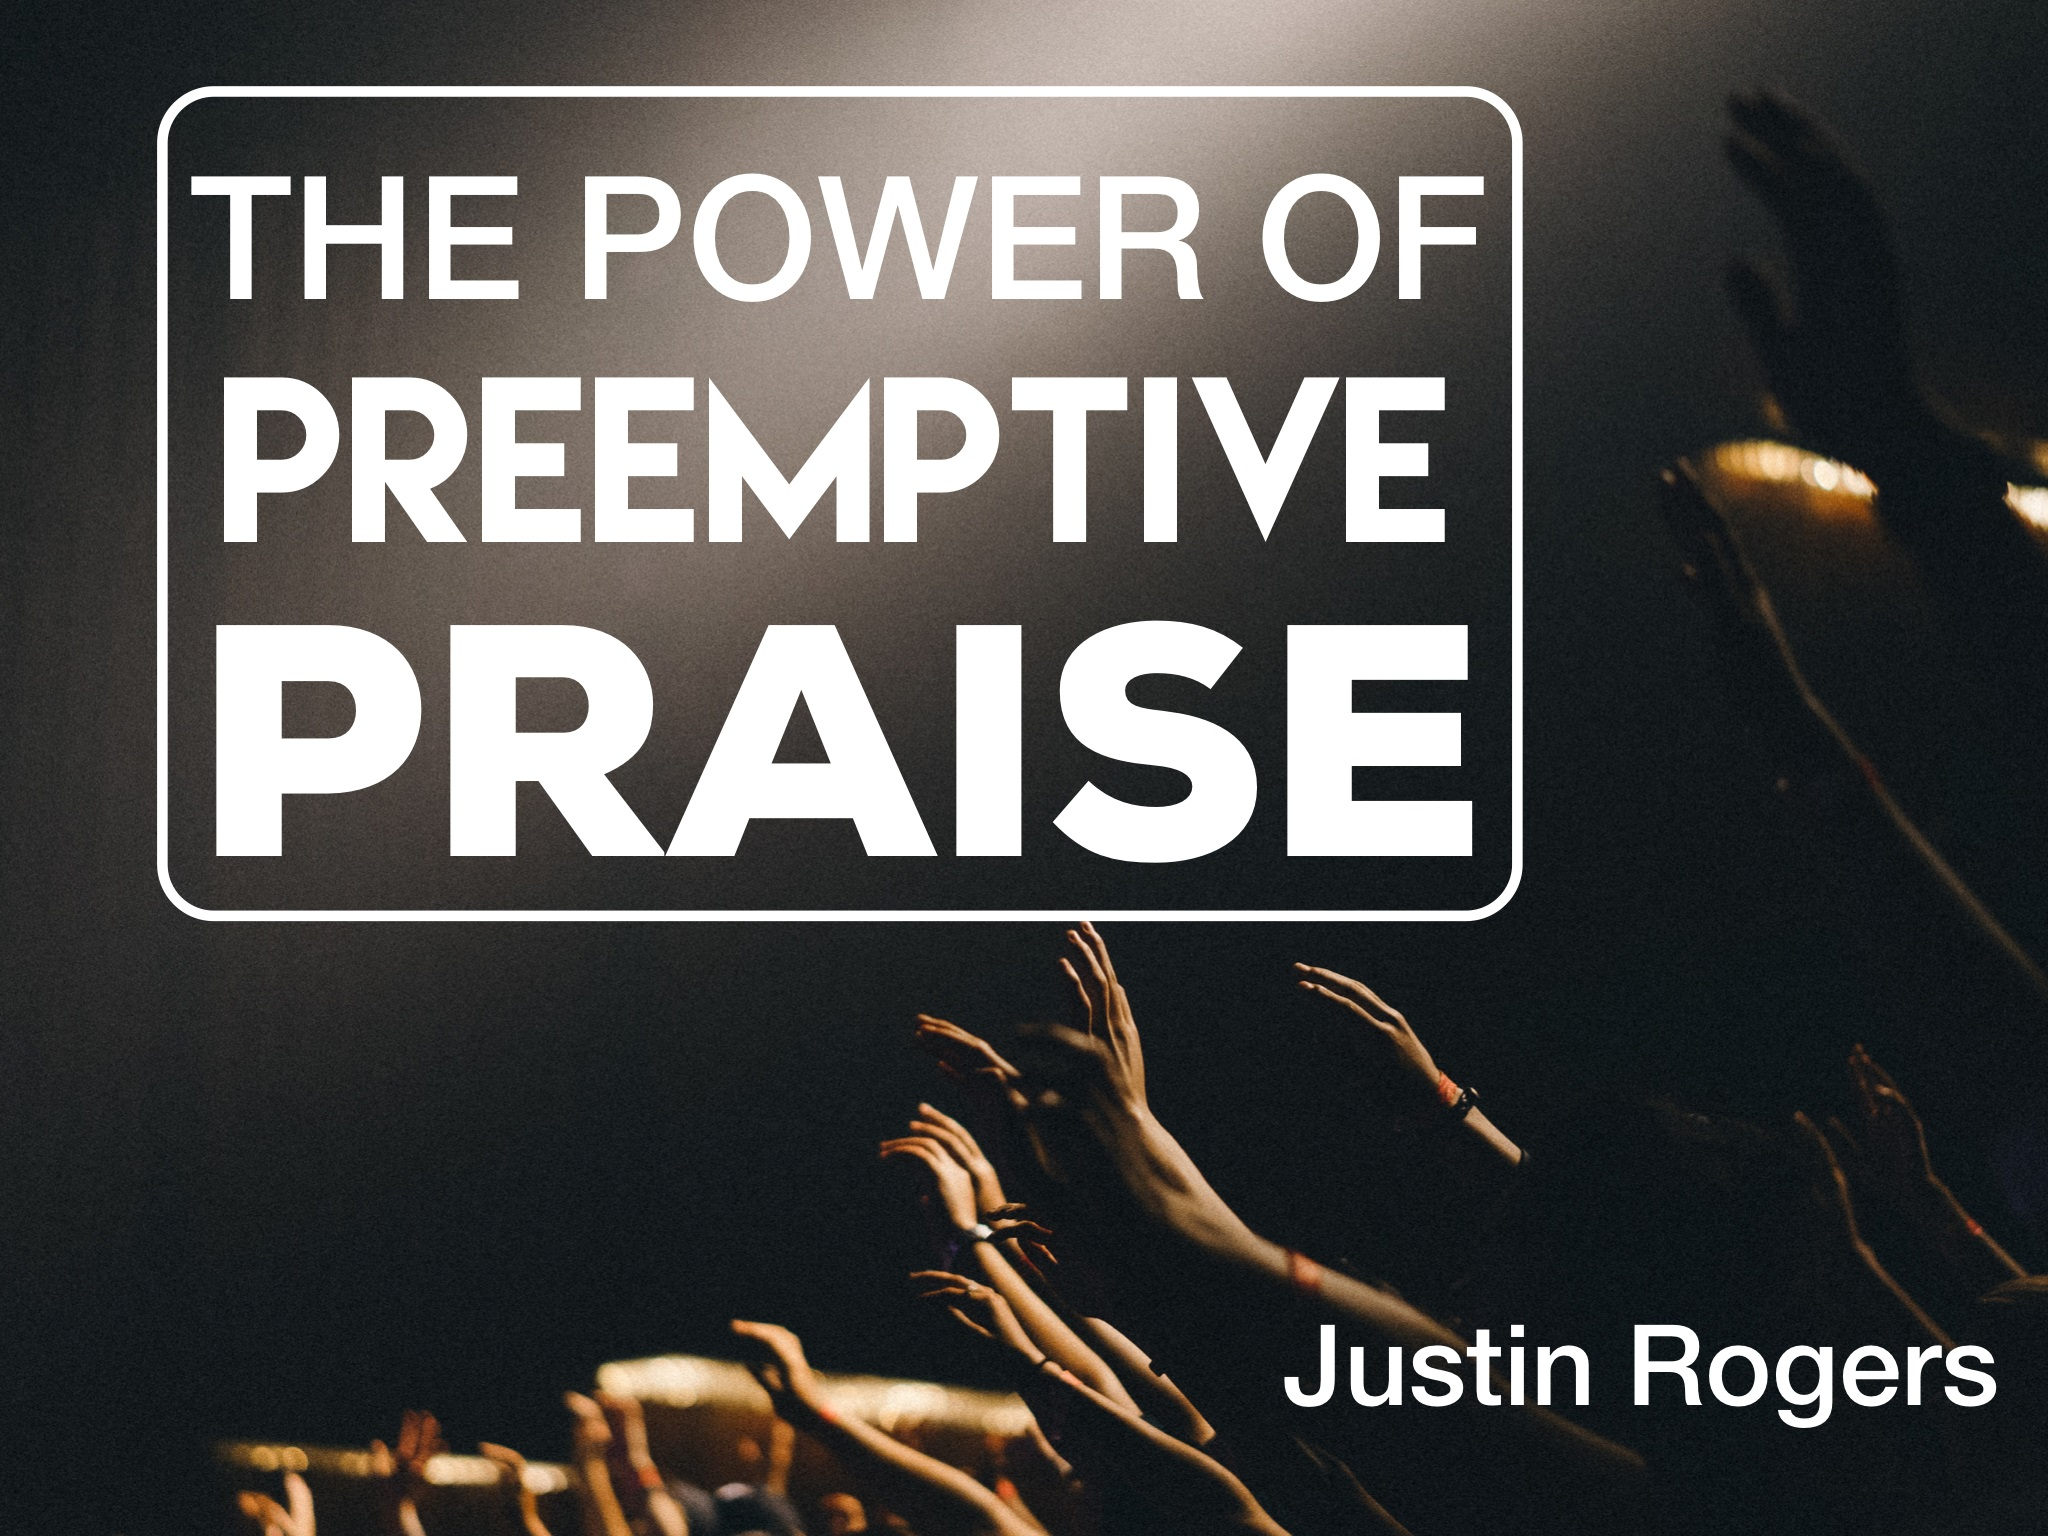 The Power of Preemptive Praise